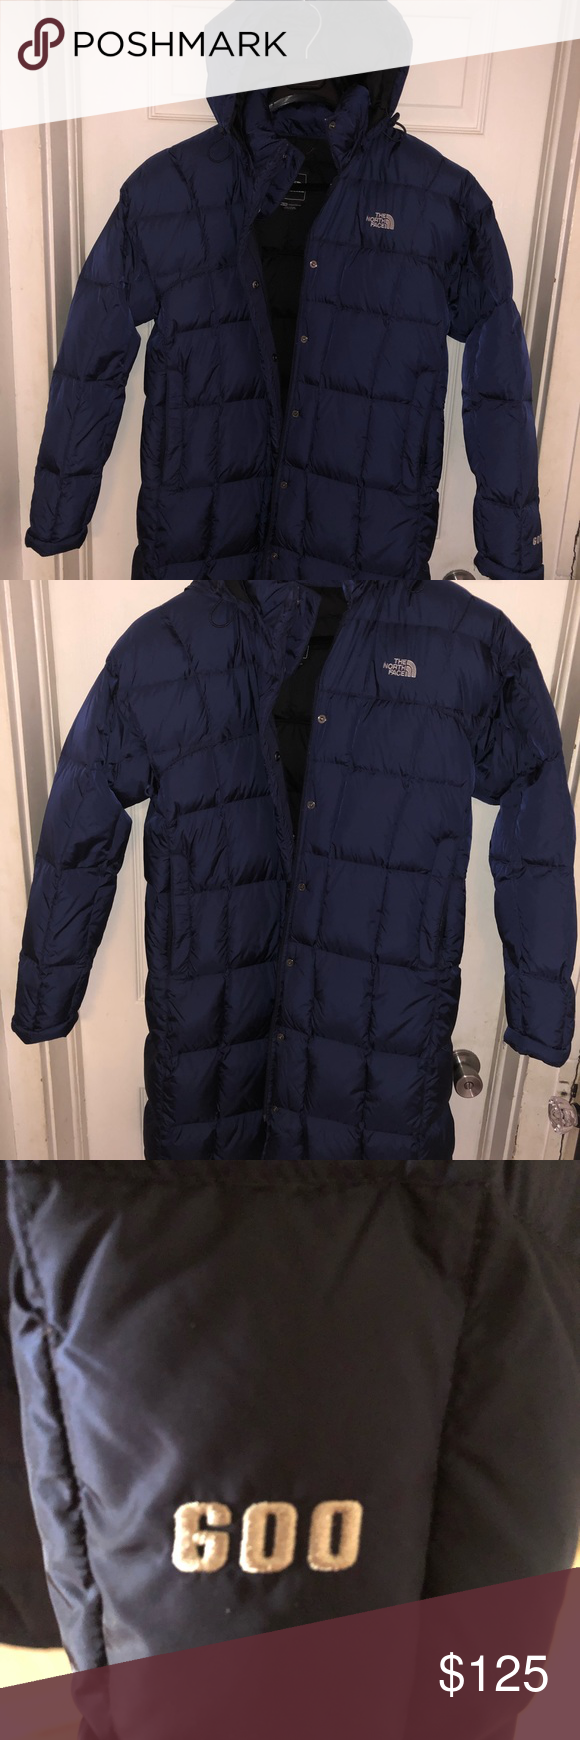 Women S North Face 600 Jacket Navy The North Face North Face Women North Face Jacket [ 1740 x 580 Pixel ]